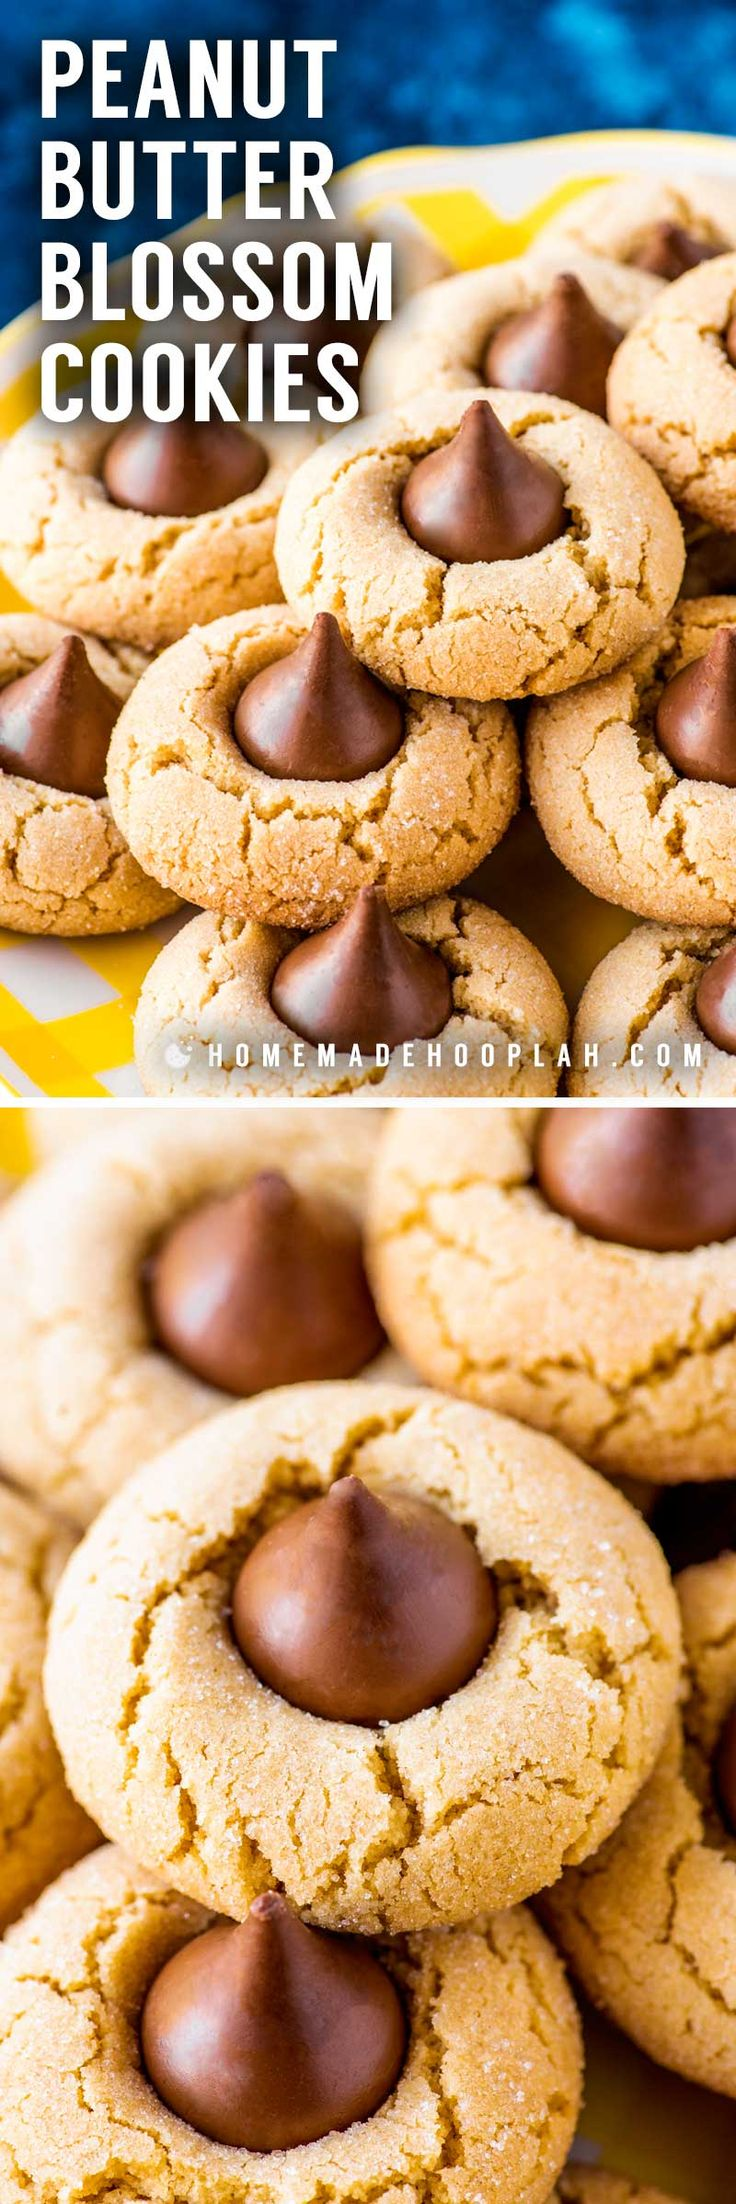 Peanut Butter Blossom Cookies! The ultimate cookie combination for chocolate and peanut butter lovers, these peanut butter blossoms are everything you remember from your childhood. They're perfect for holidays, parties, or gifts, and are always a hit at cookie exchanges. | HomemadeHooplah.com